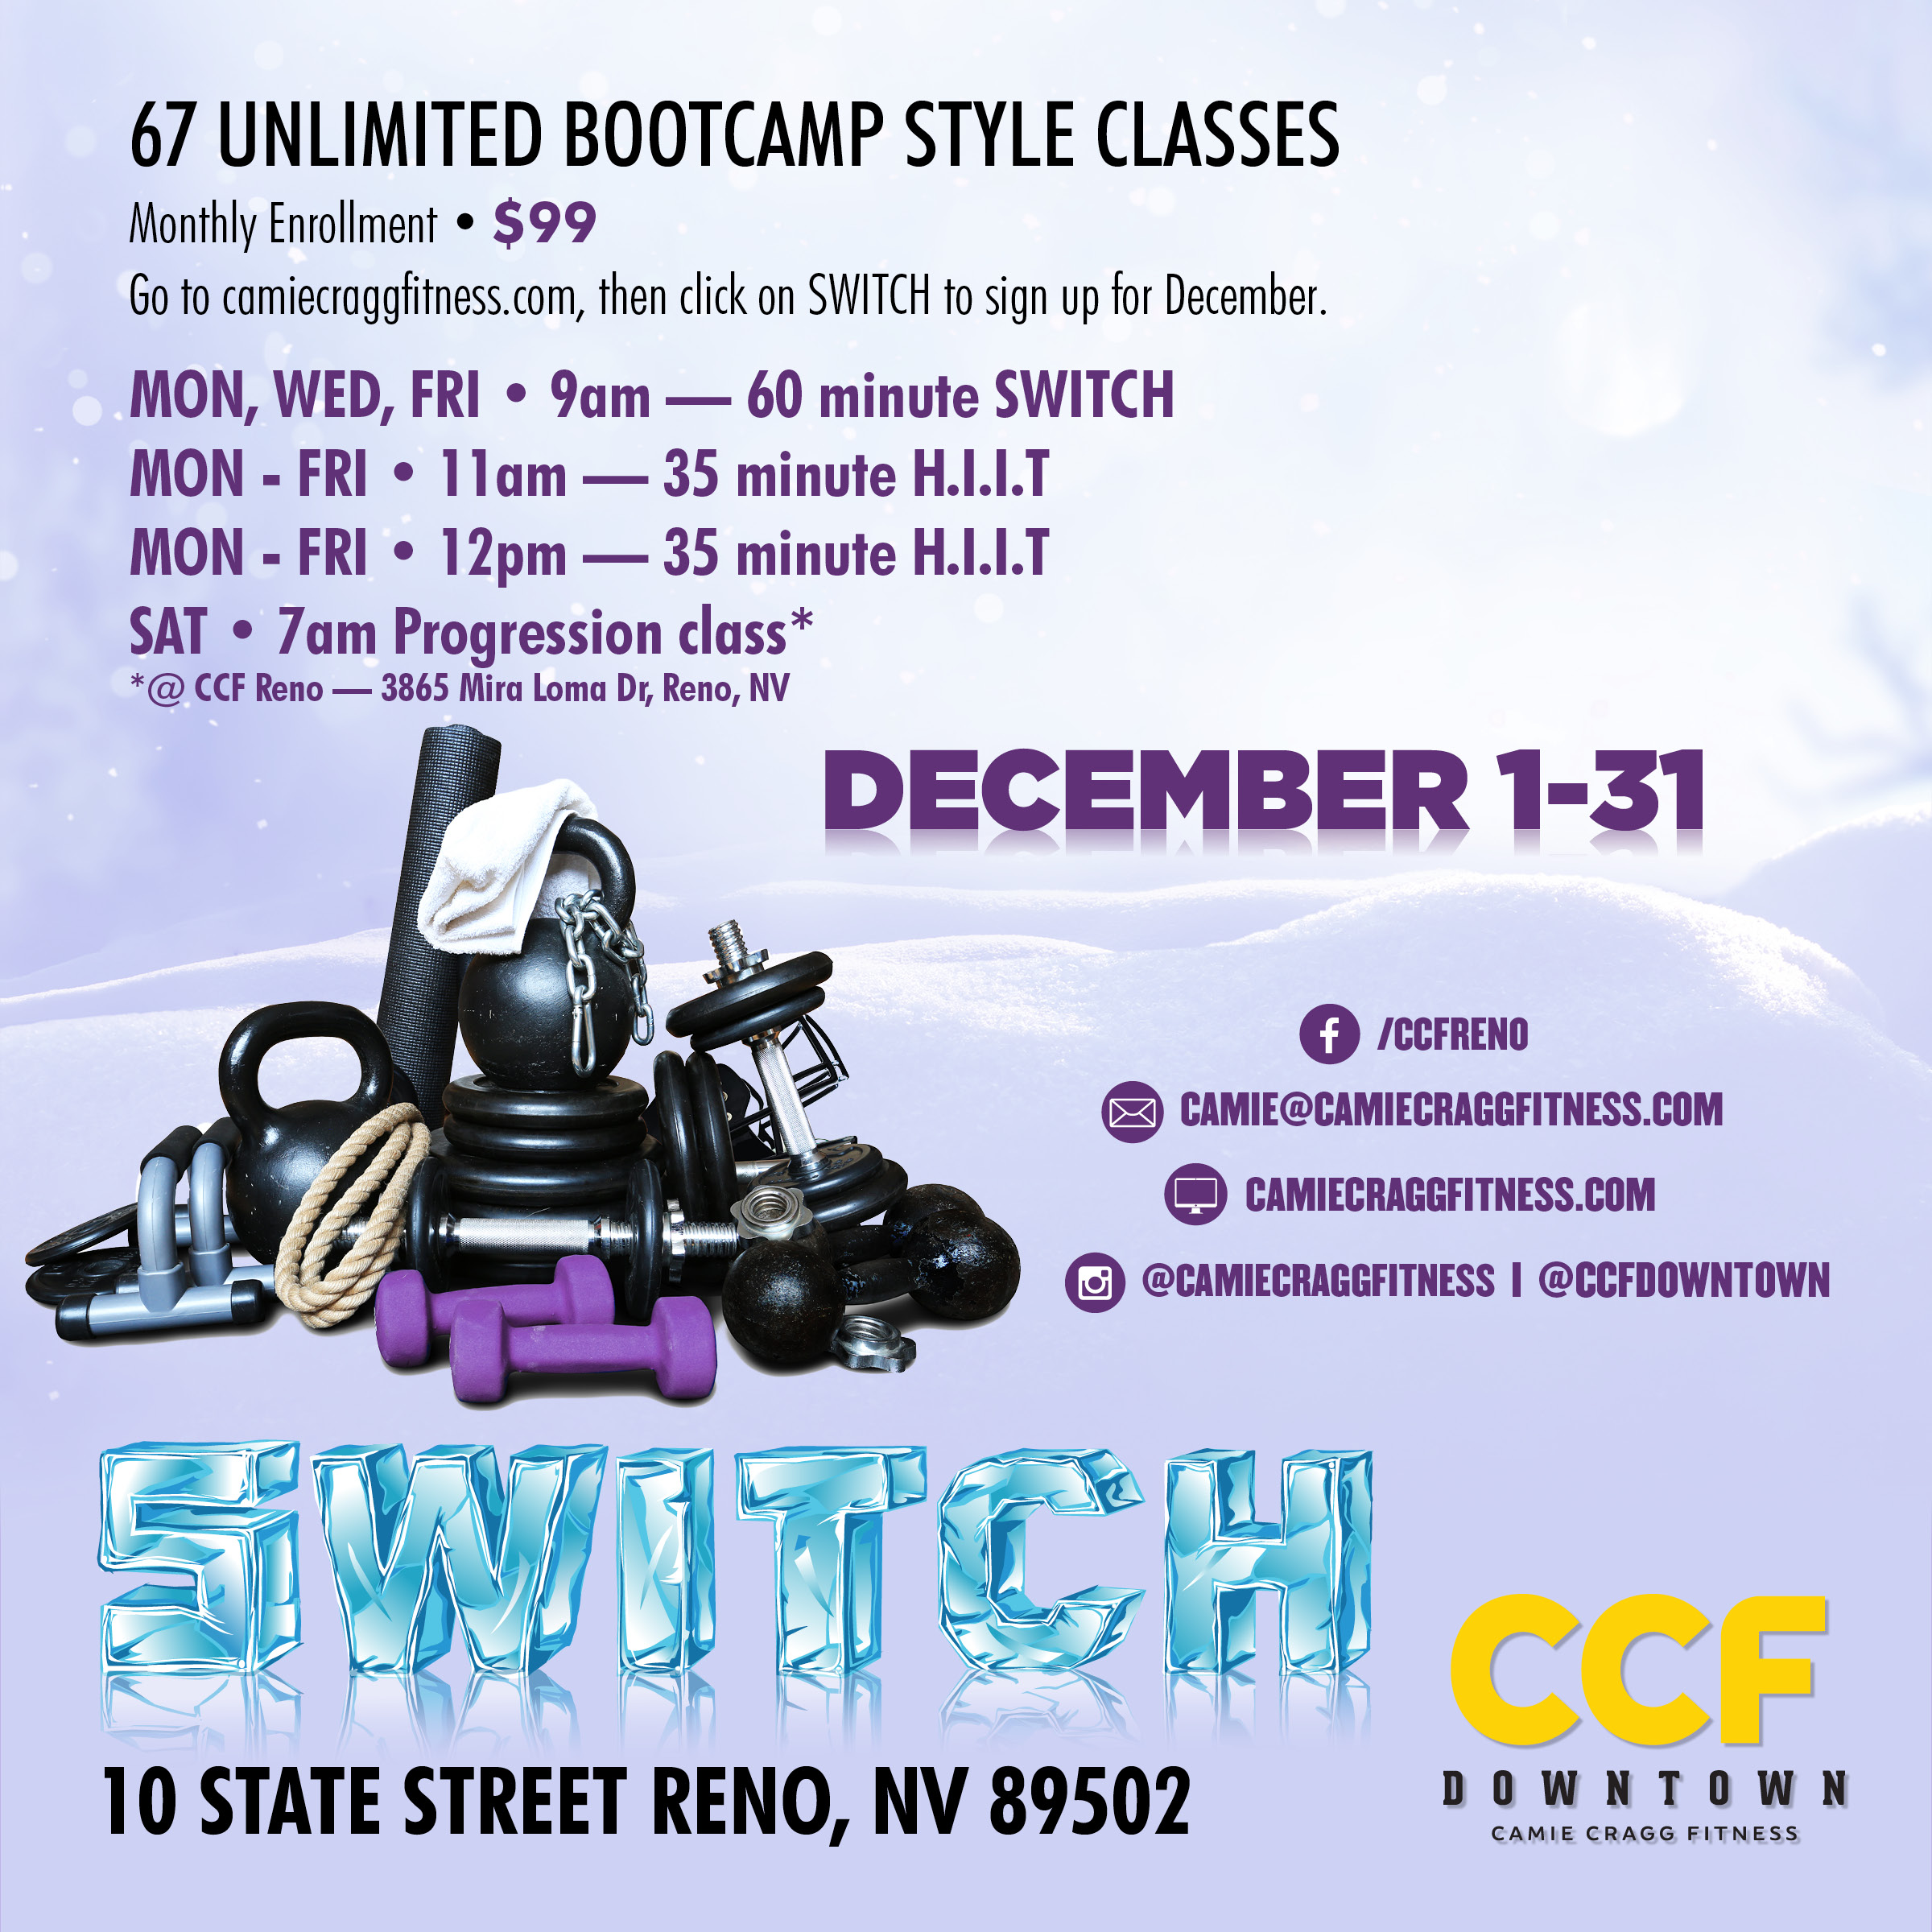 December Downtown S.W.I.T.C.H. Feauted